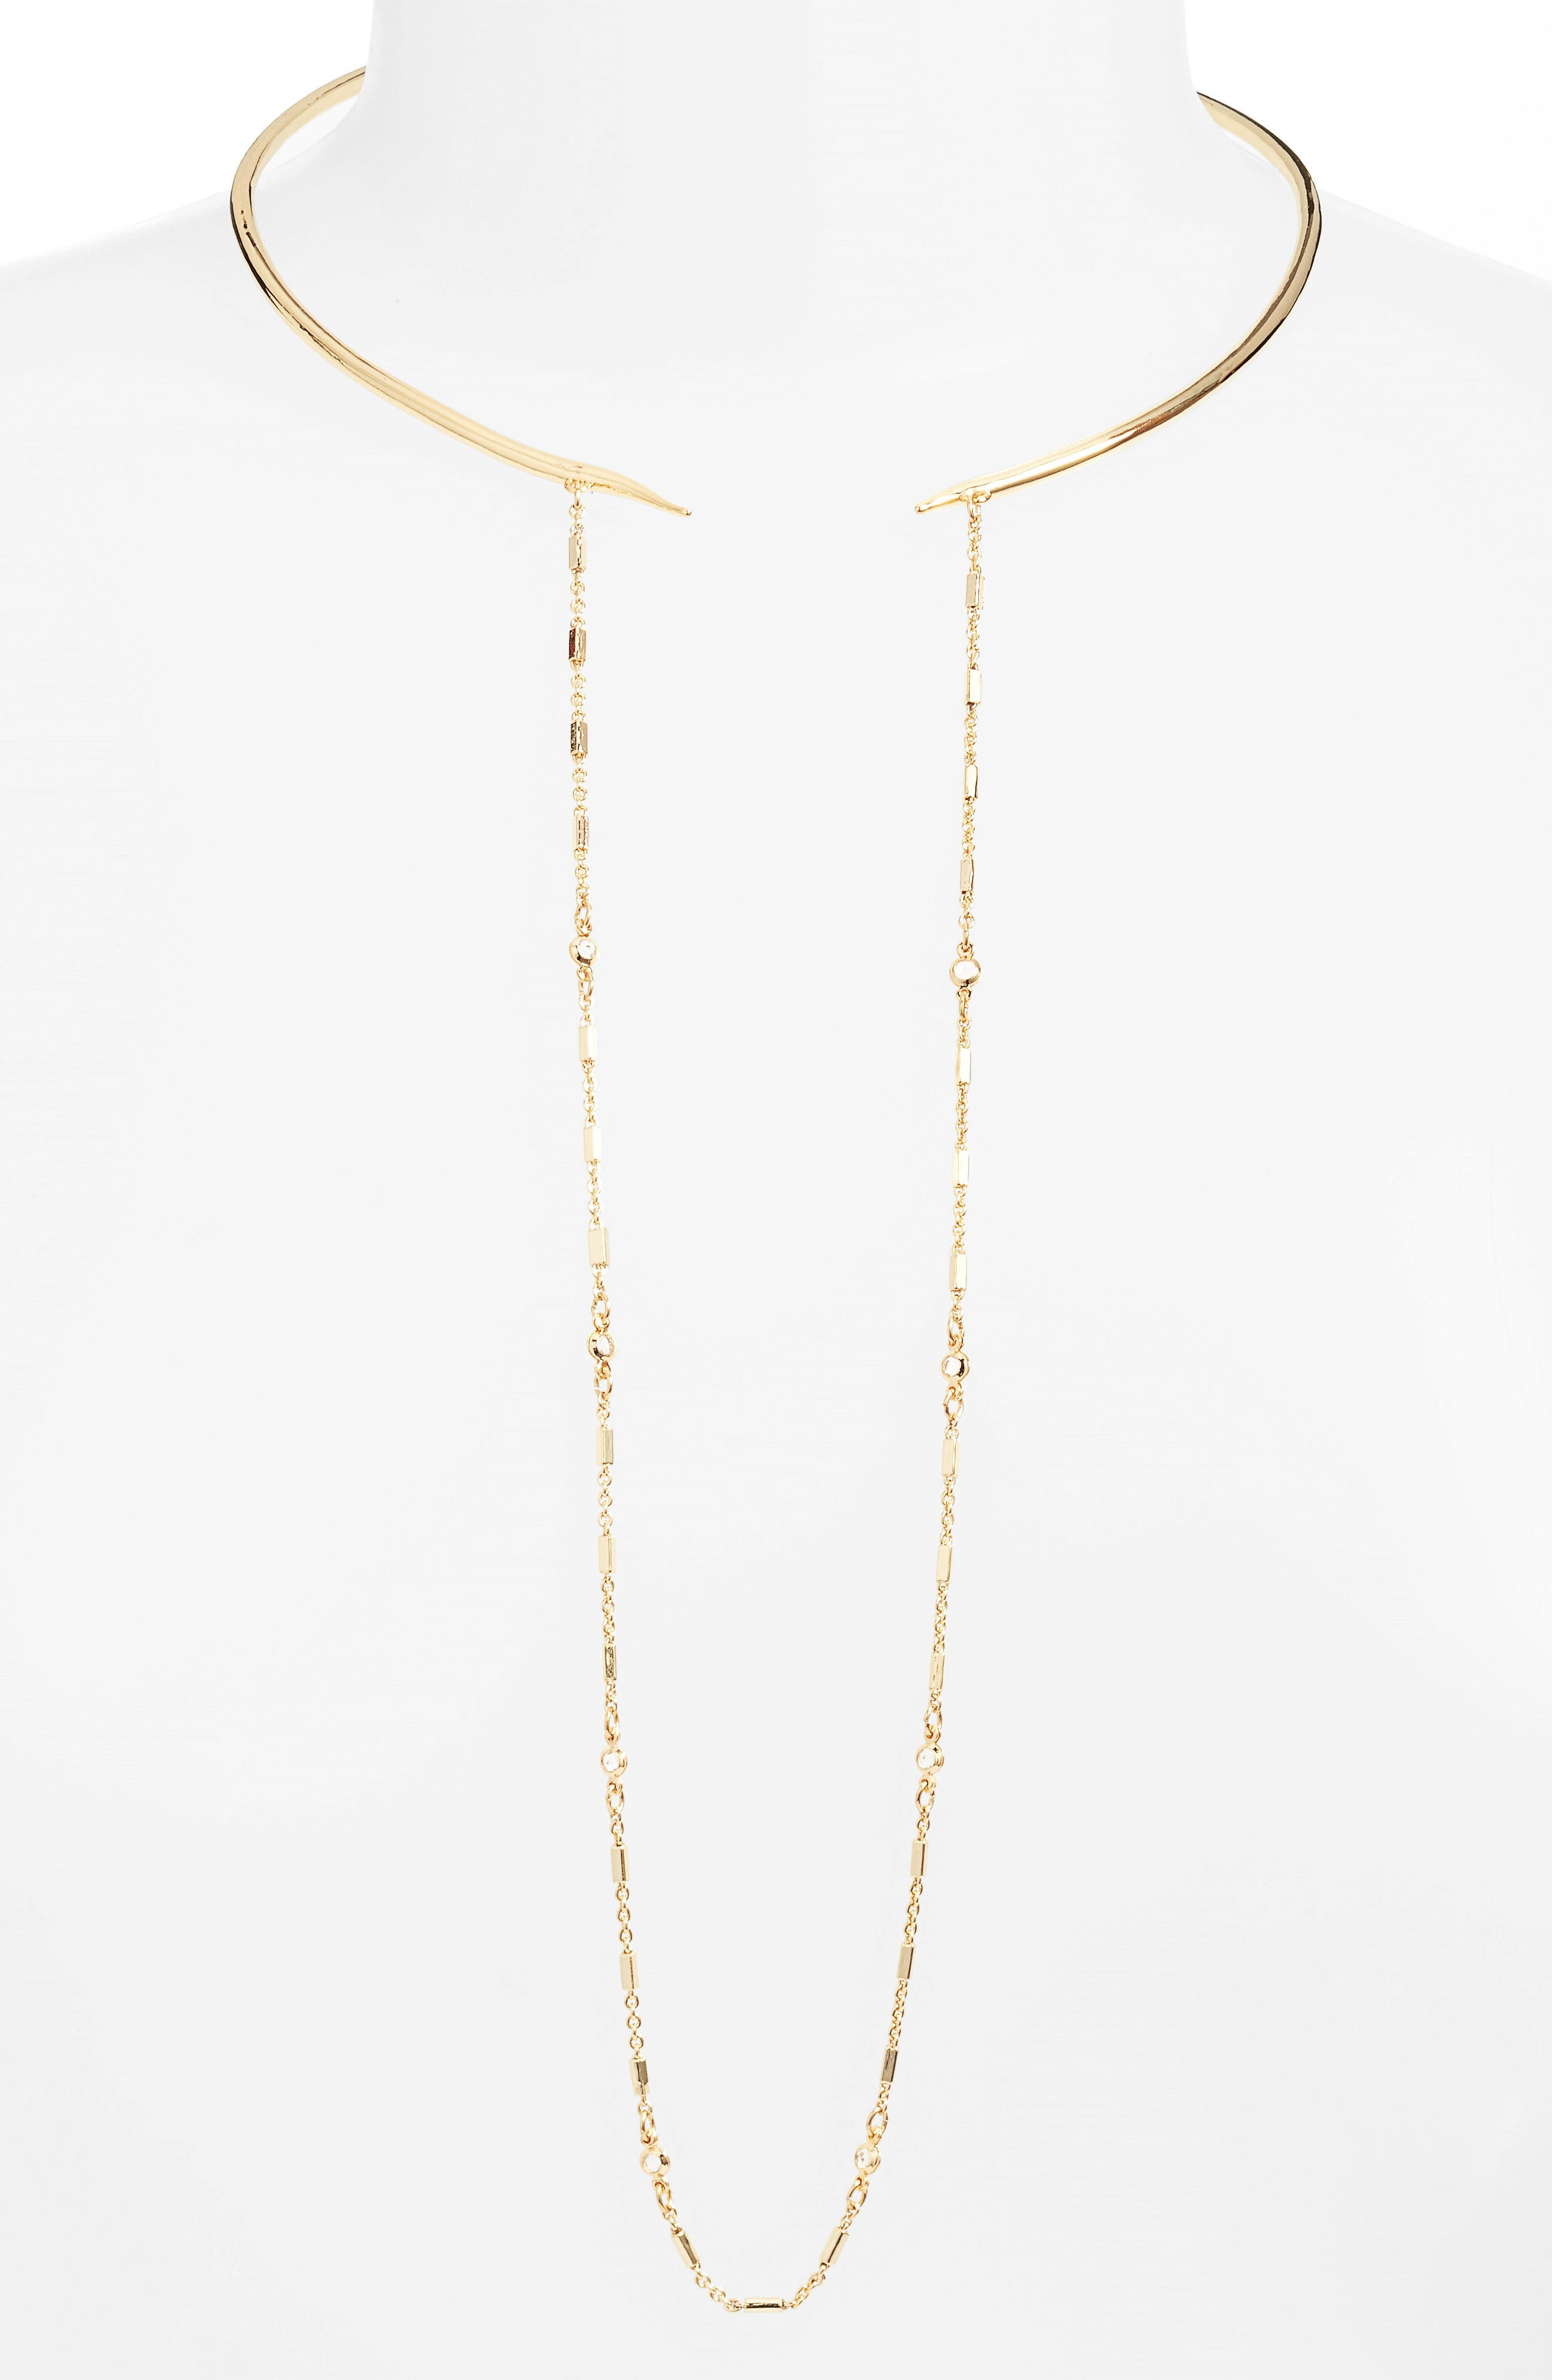 Main Image - Vince Camuto Hinge Collar Necklace